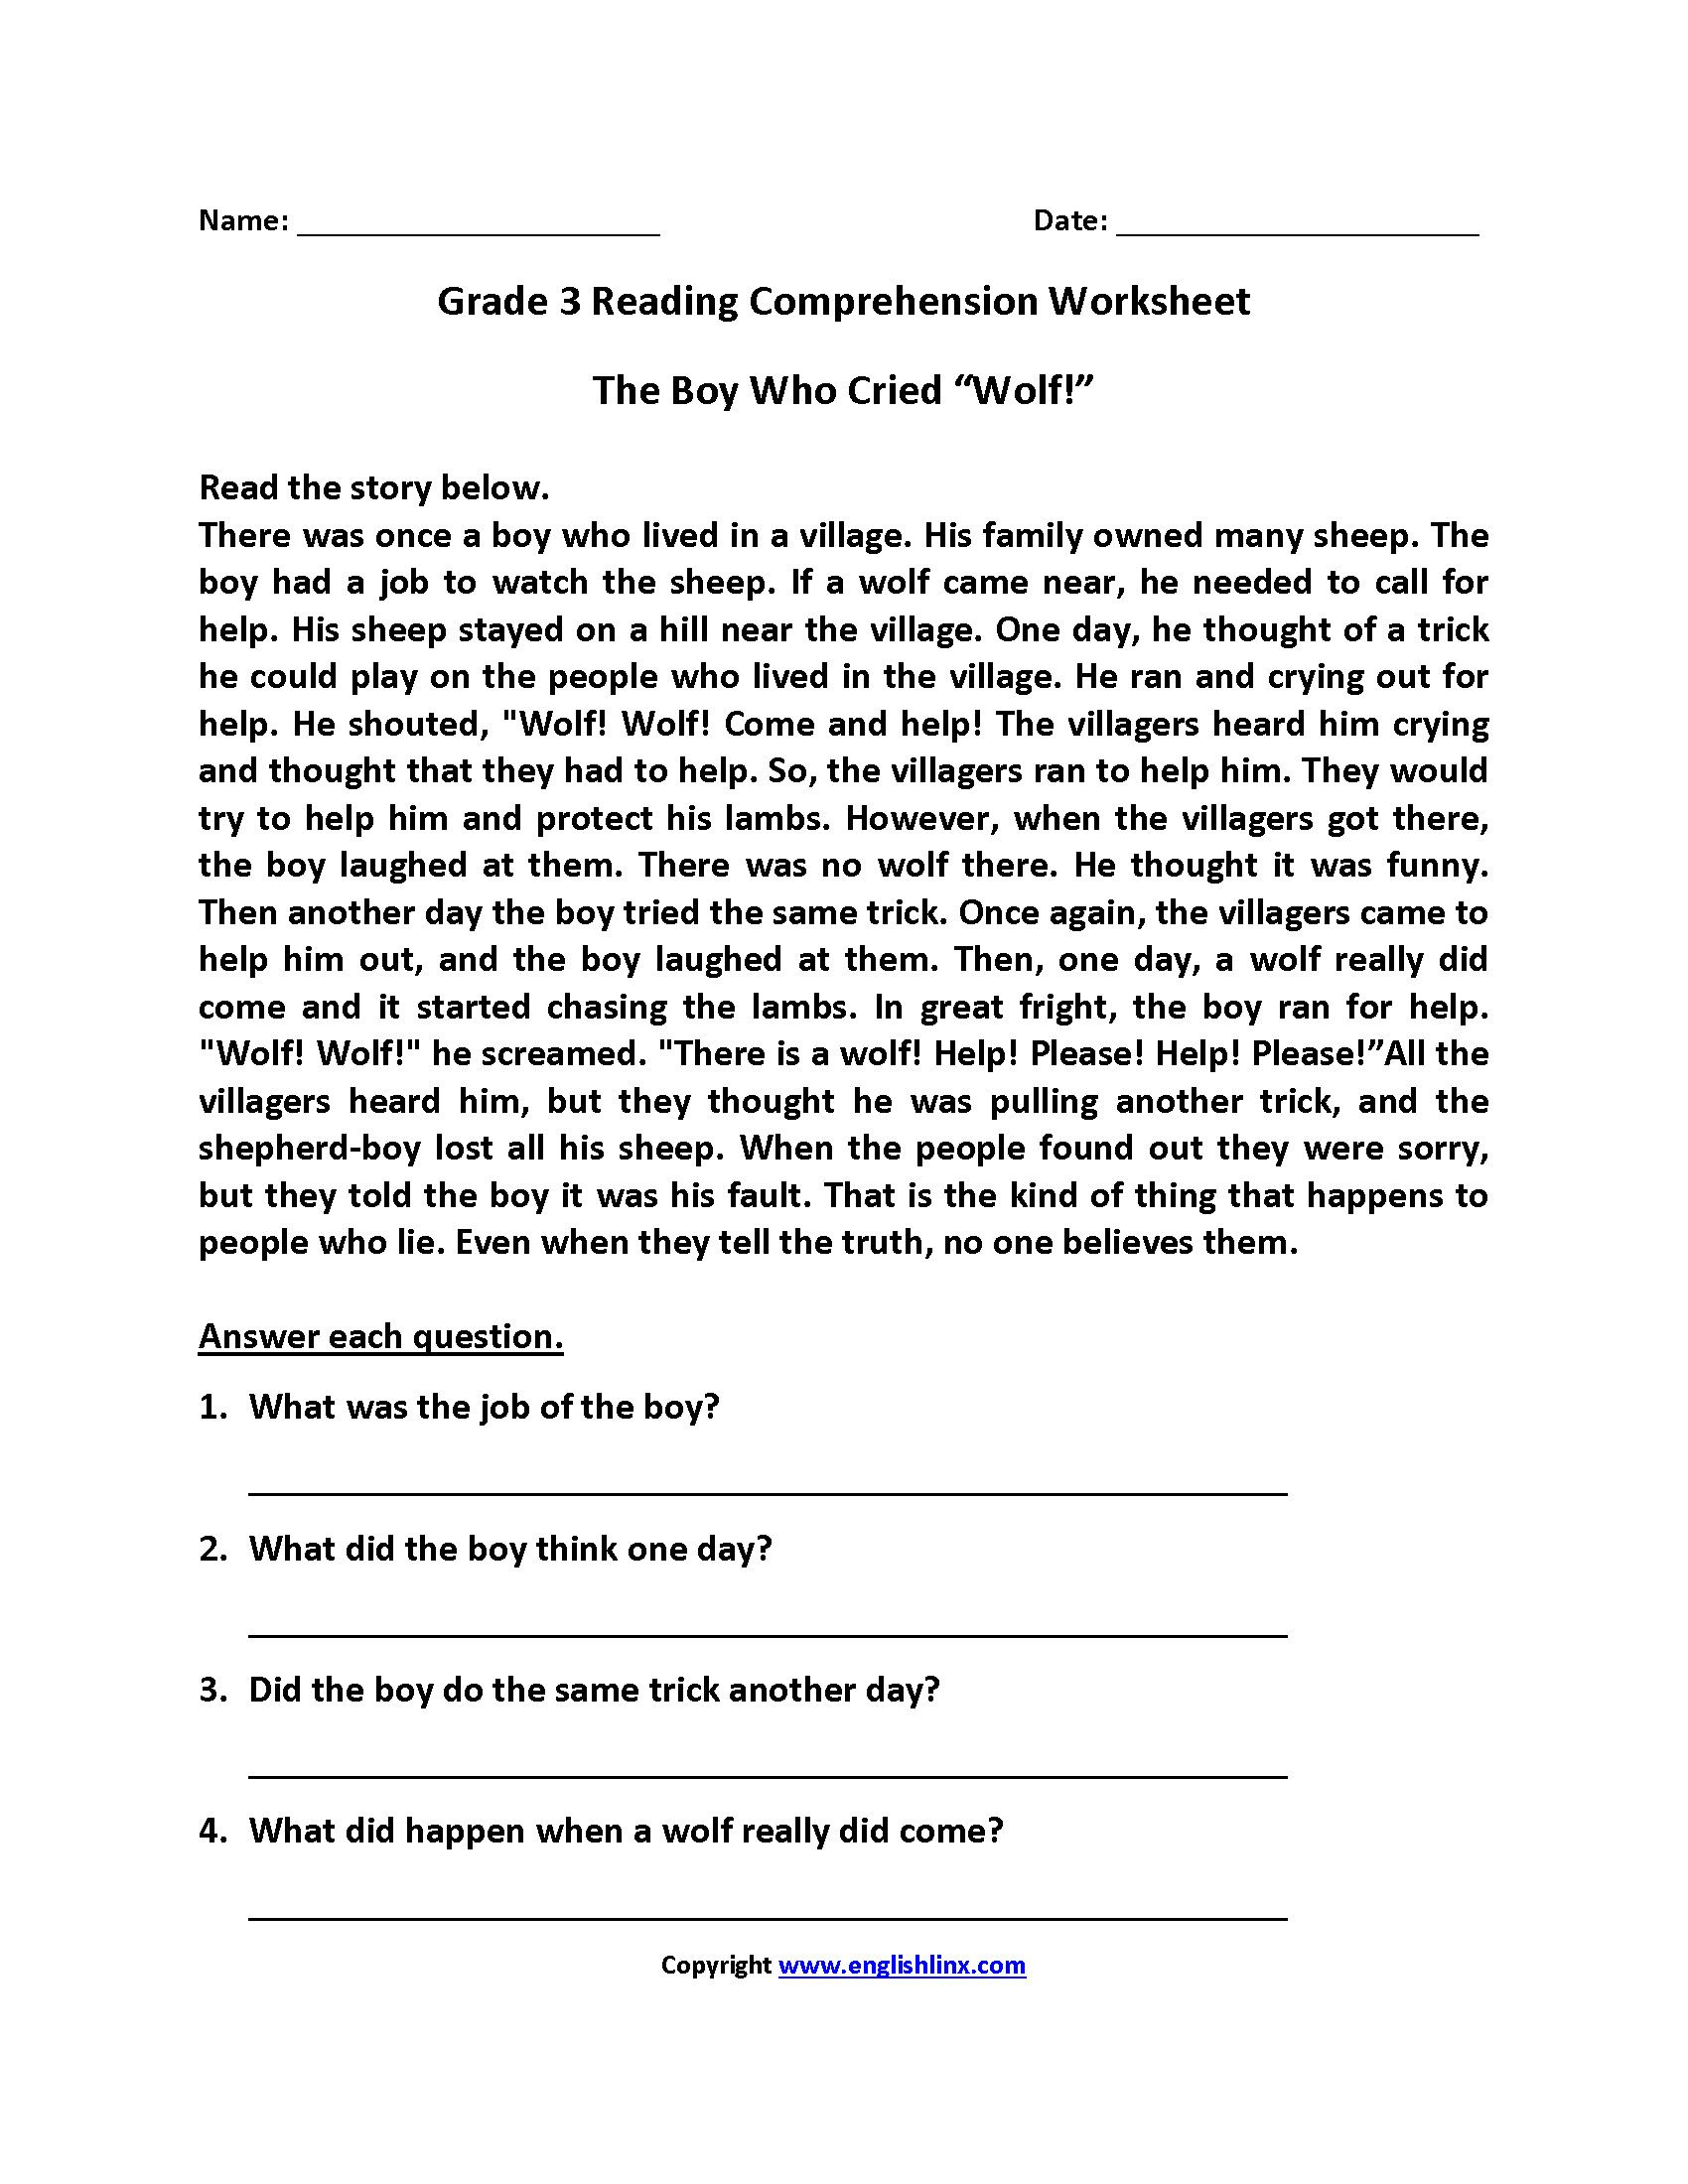 - 3 Reading Comprehension Worksheets Third Grade 3 In 2020 (With